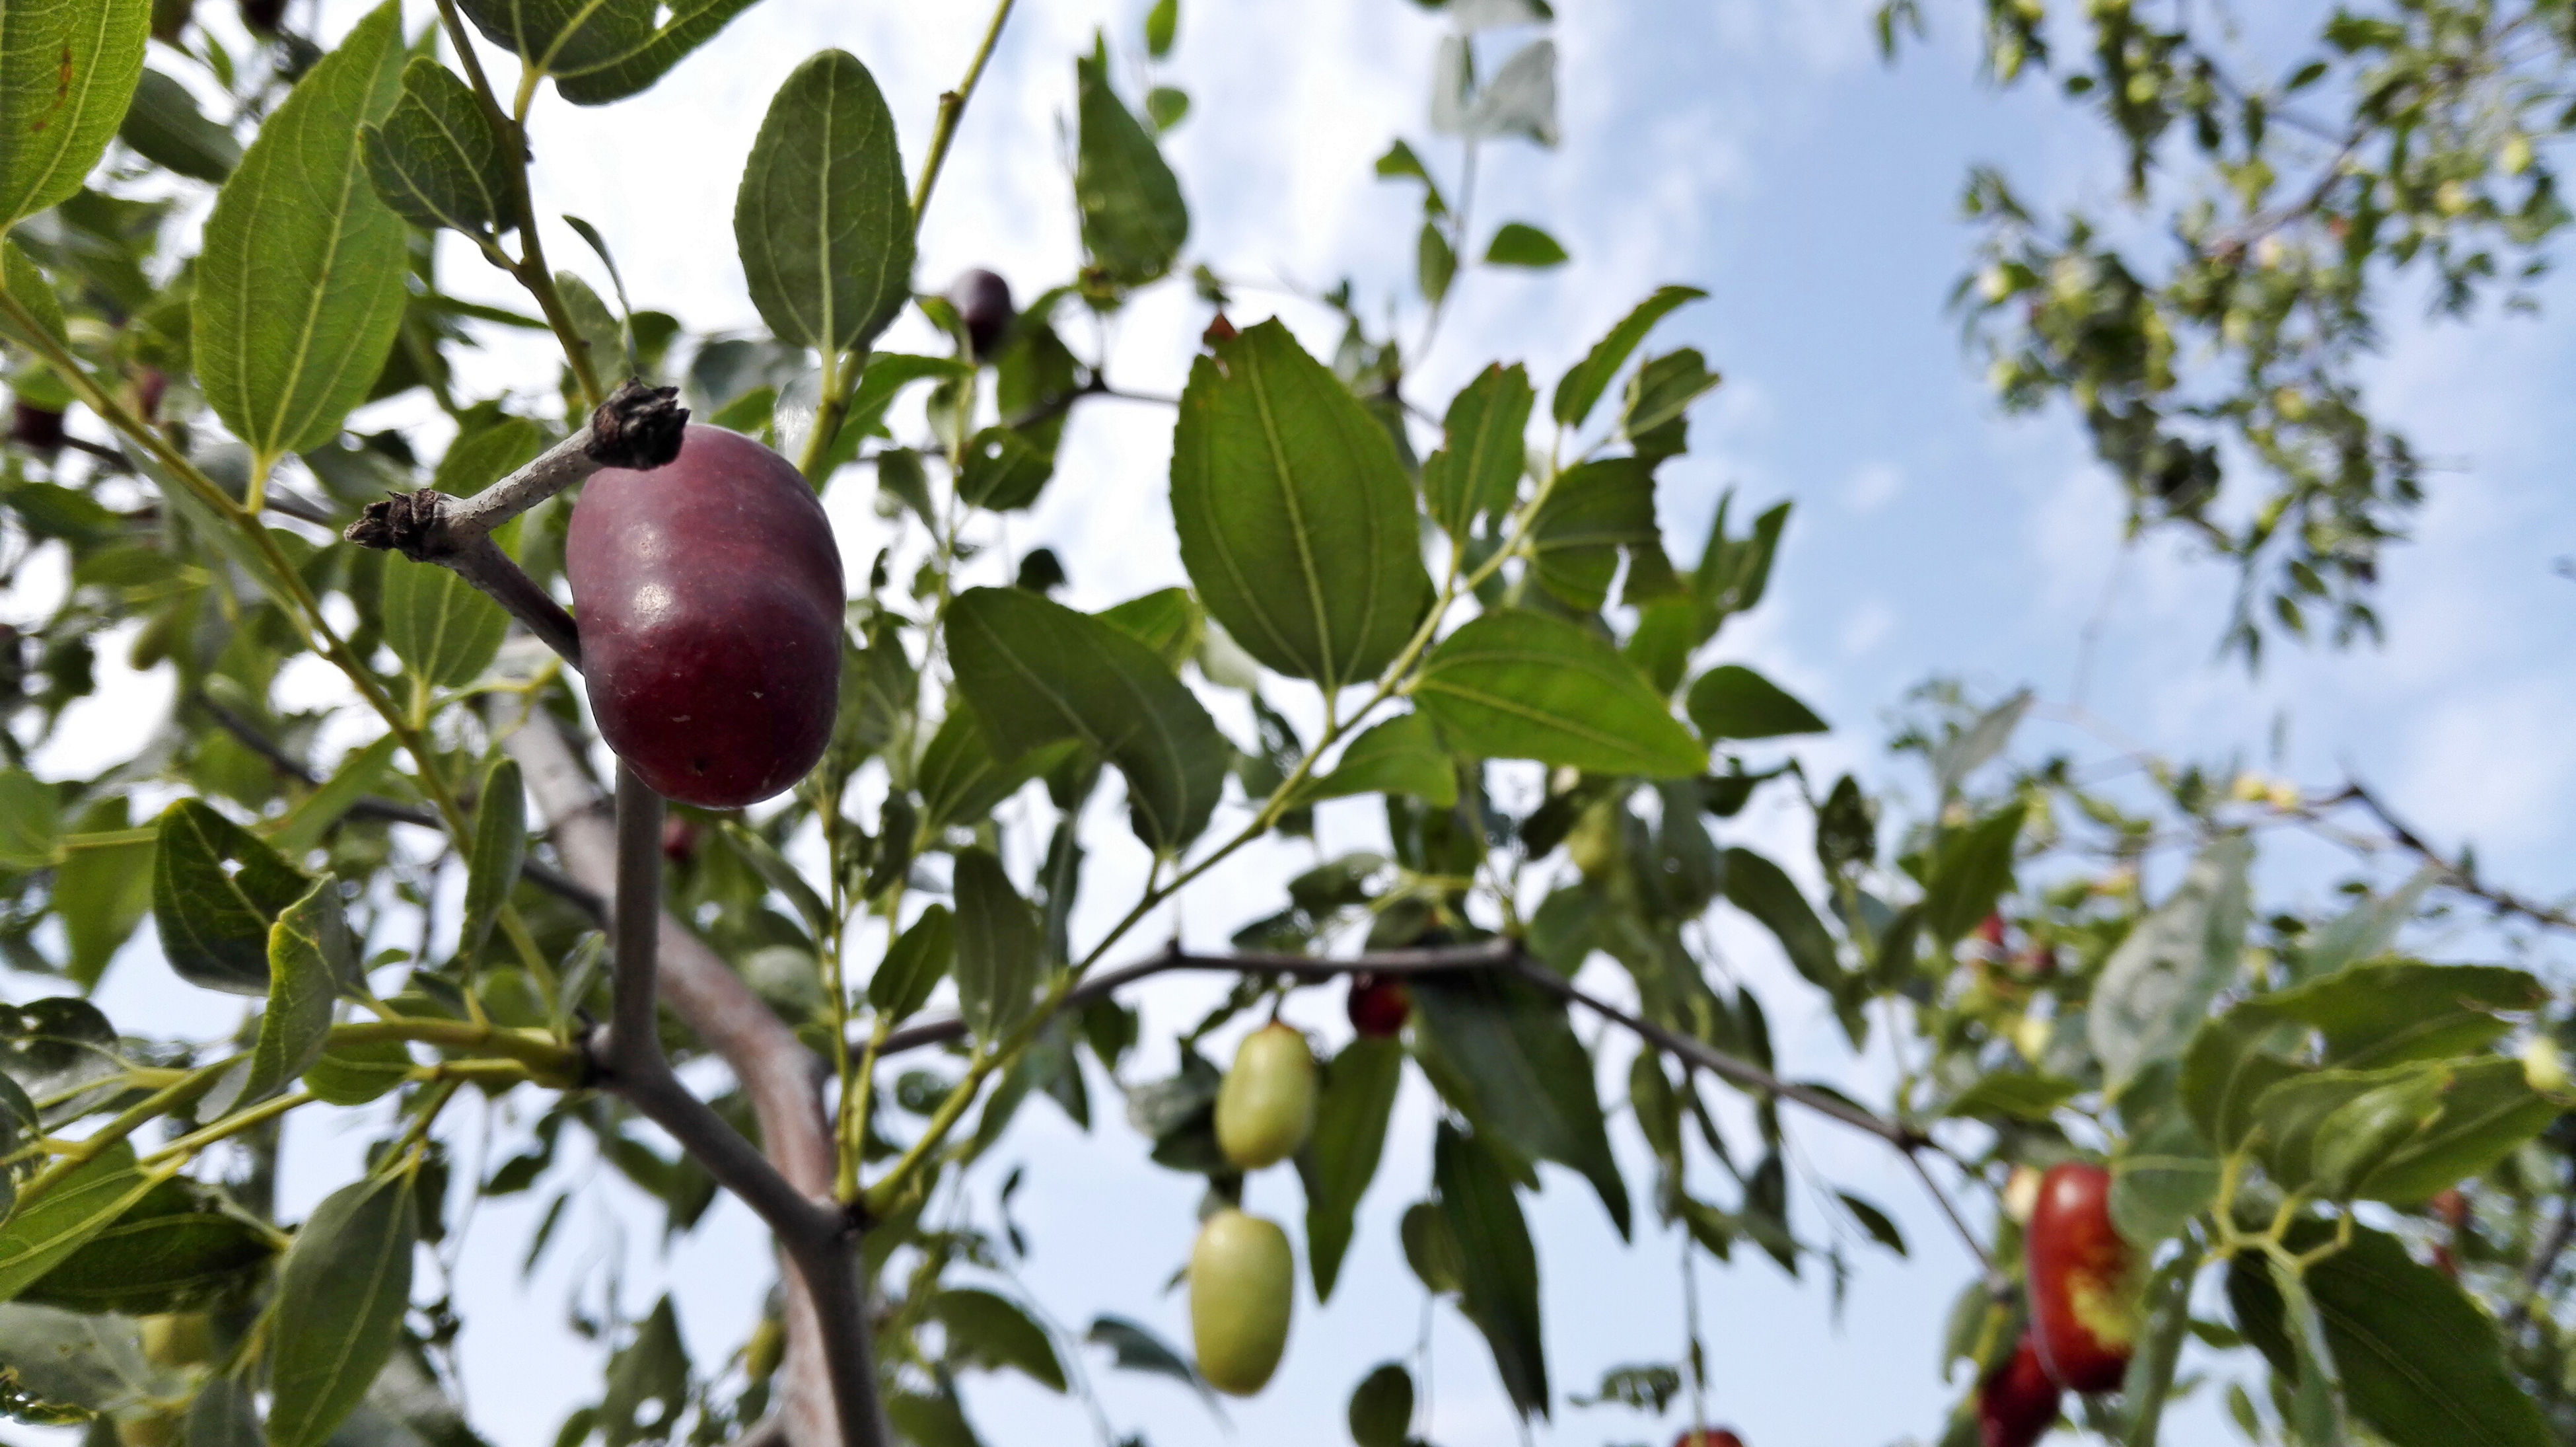 fruit, tree, leaf, food and drink, growth, branch, food, low angle view, healthy eating, freshness, green color, nature, close-up, focus on foreground, hanging, day, ripe, outdoors, sky, apple tree